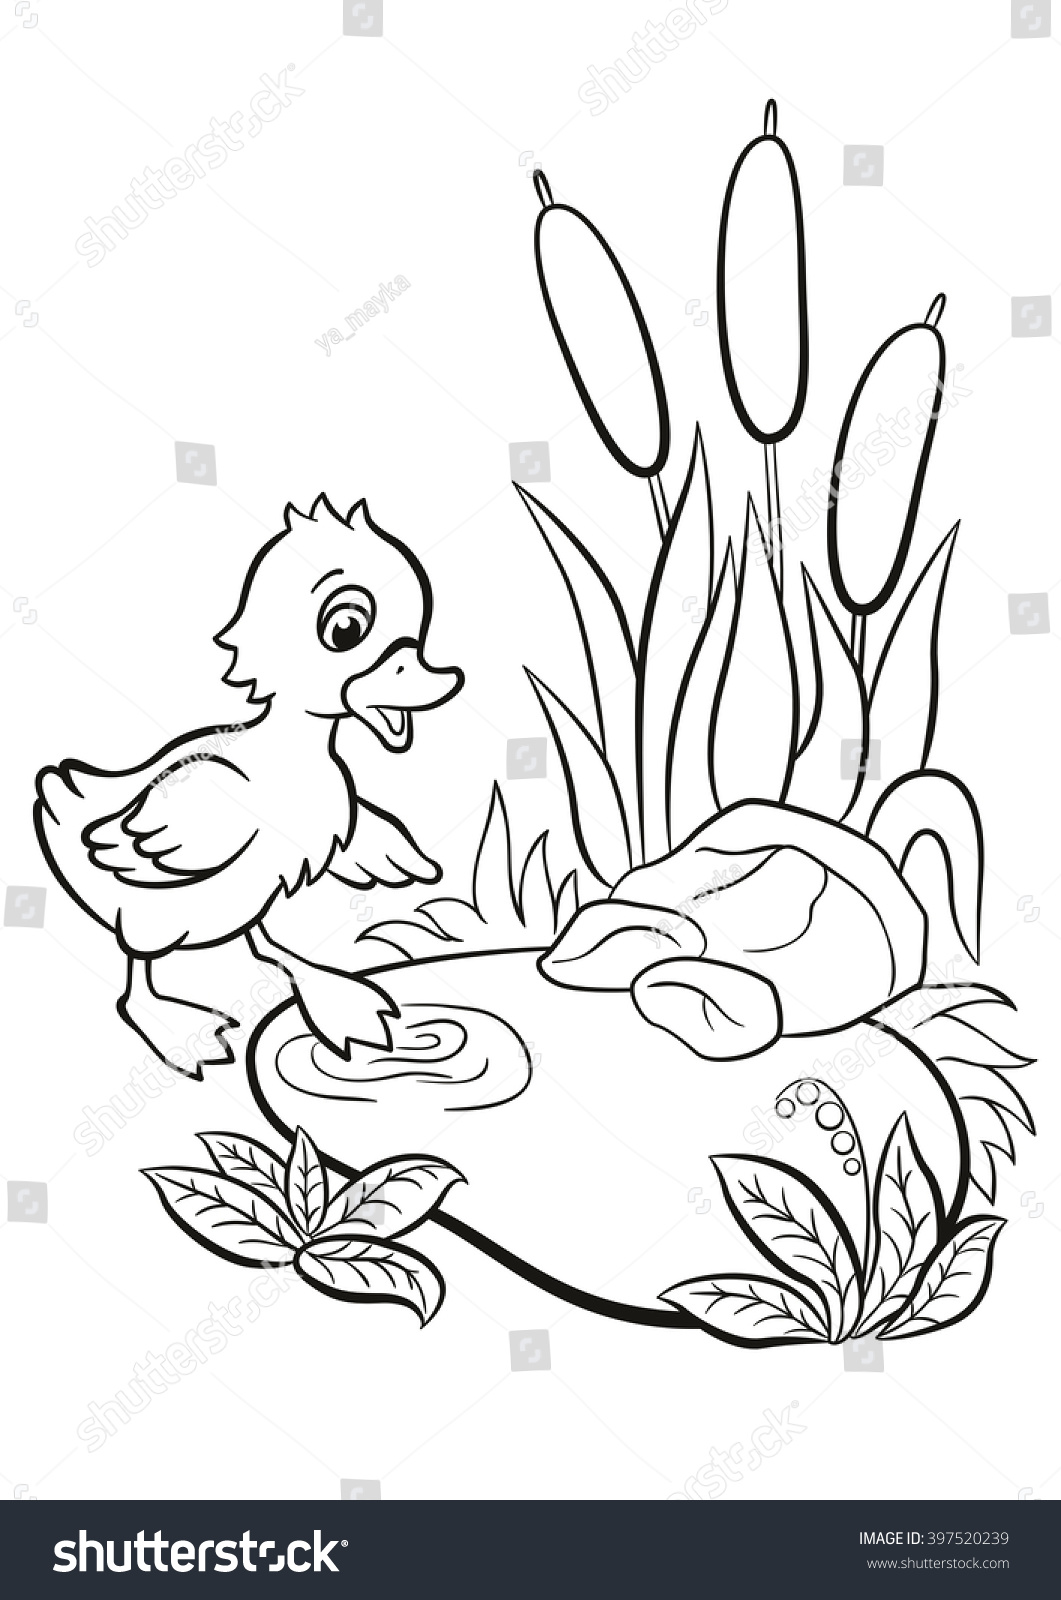 Coloring Pages Little Cute Duckling Tries Stock Illustration ...